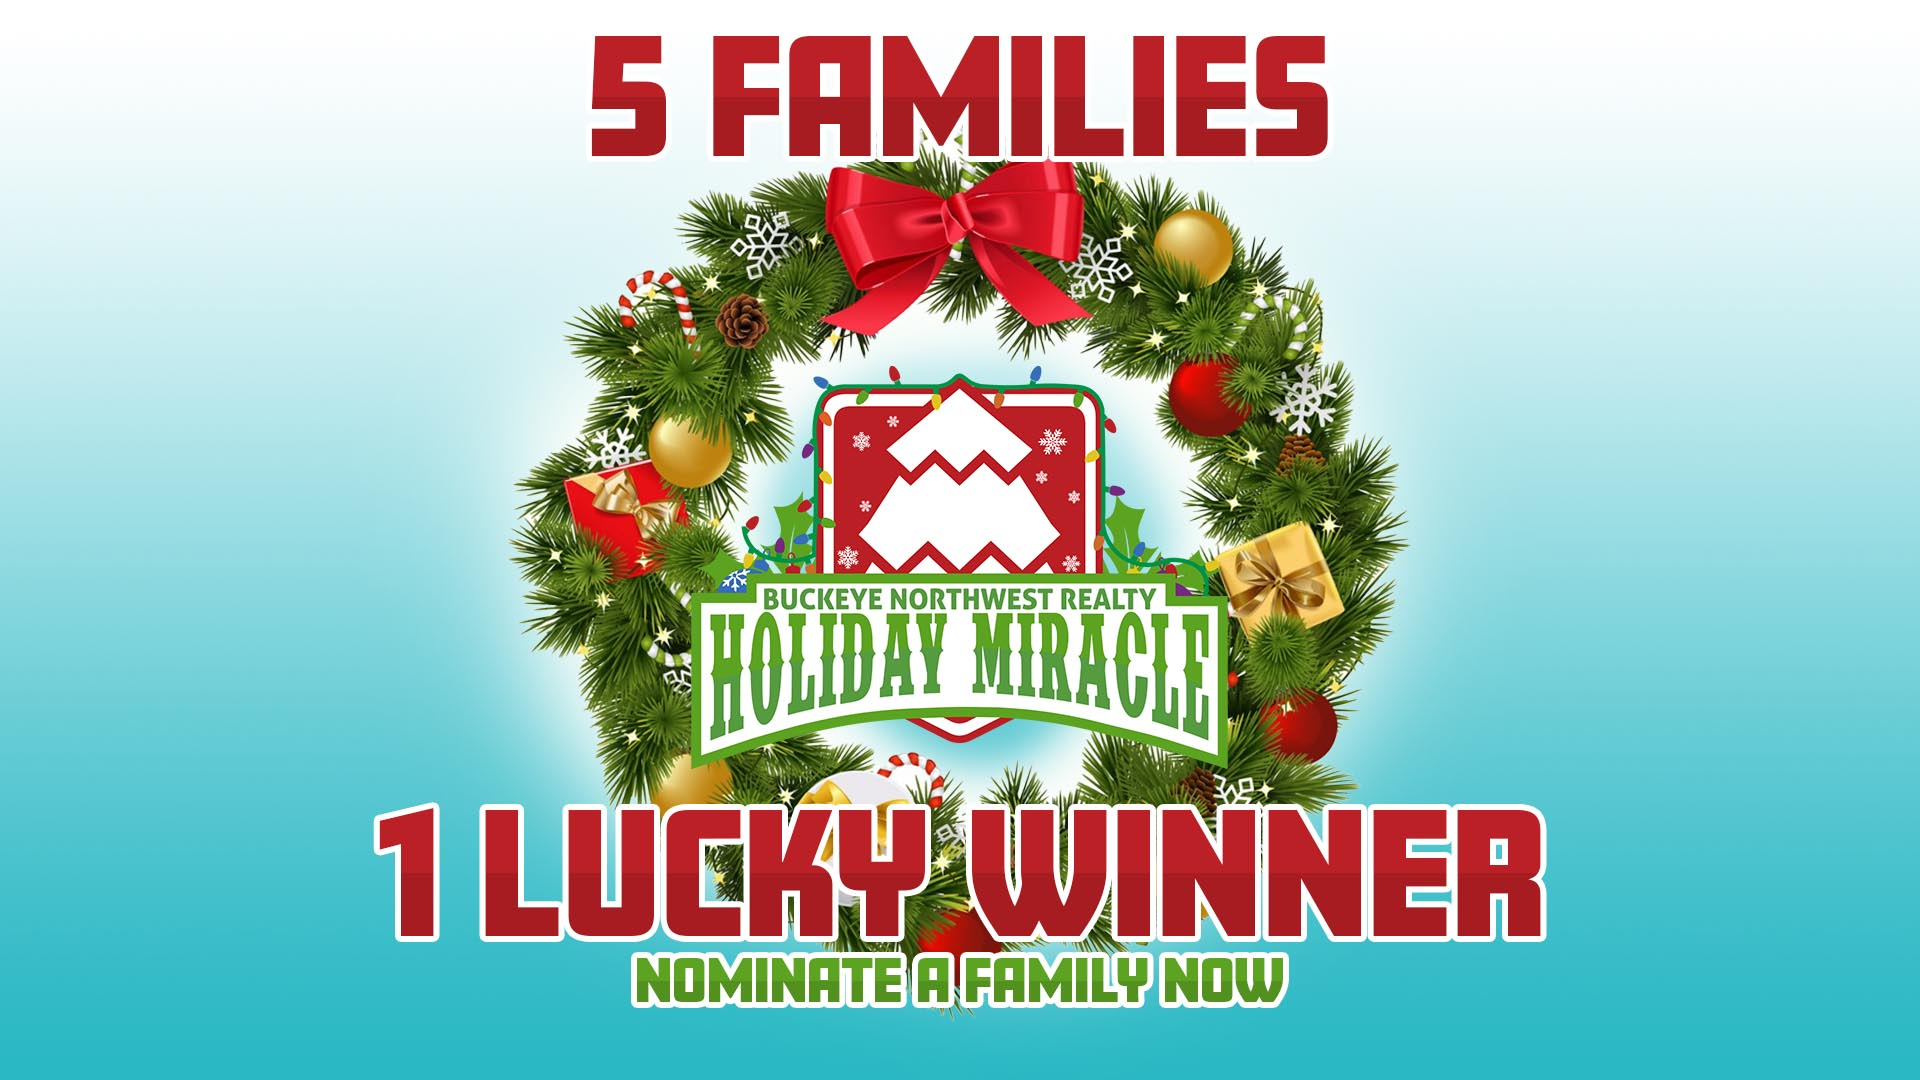 Buckeye Northwest Realty Holiday Miracle : Nominate A Family